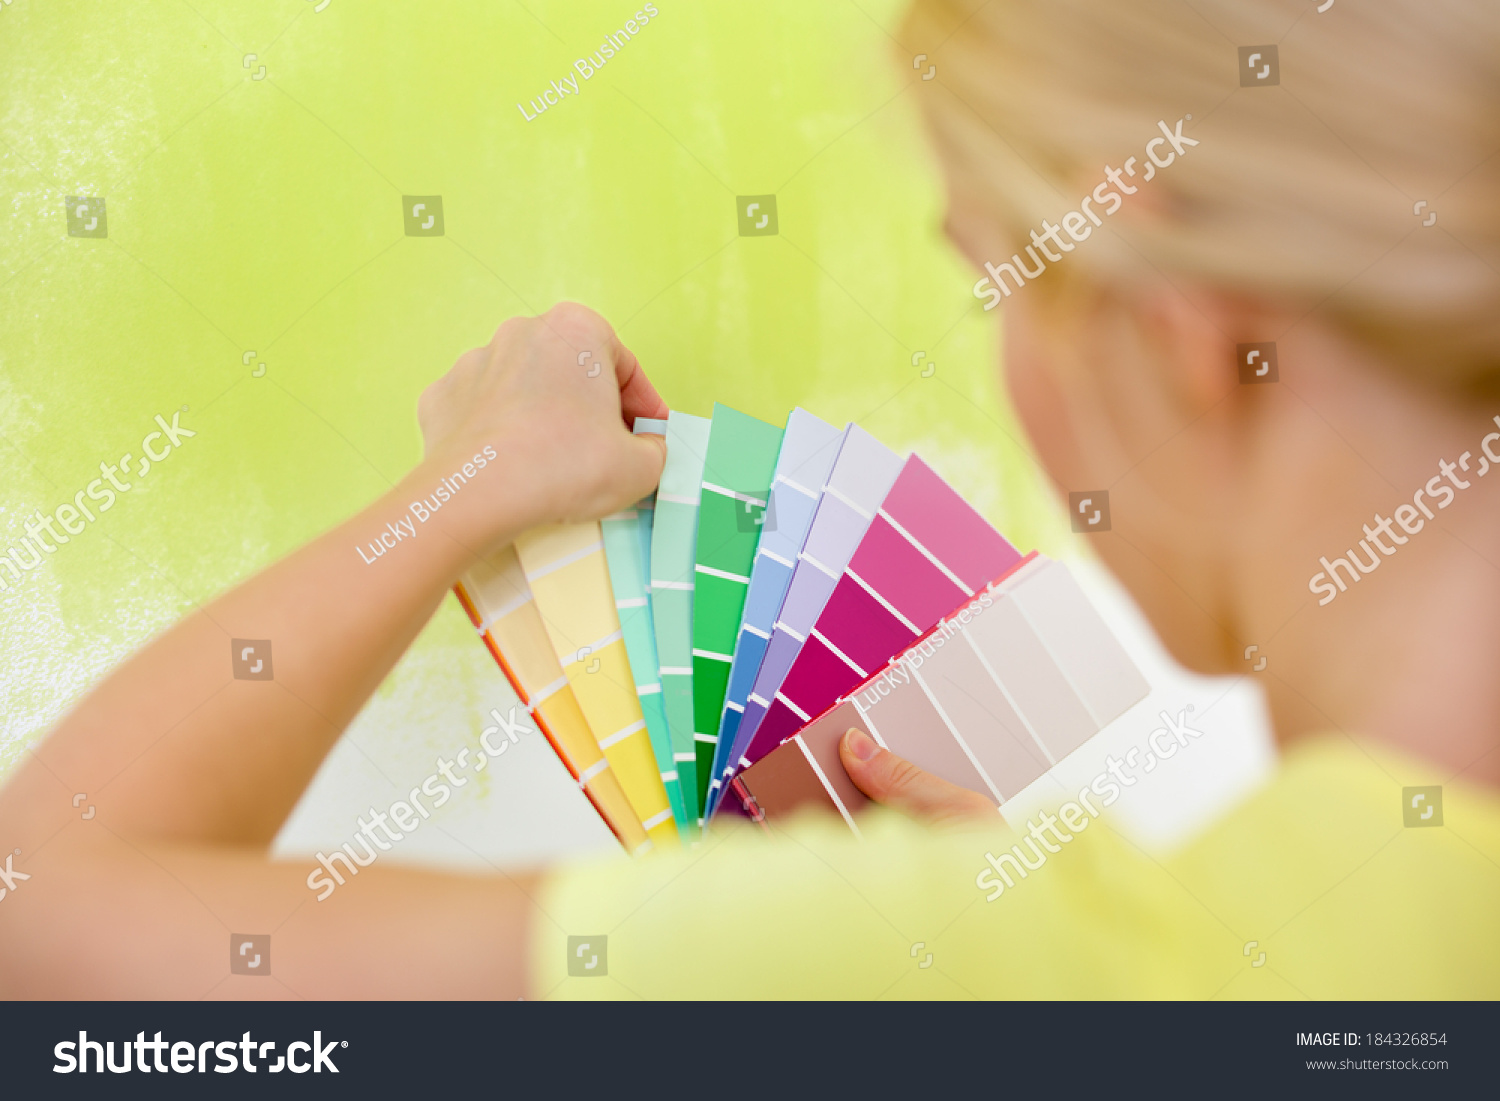 Woman Choosing Color Painting Wall Stock Photo (Edit Now) 184326854 ...